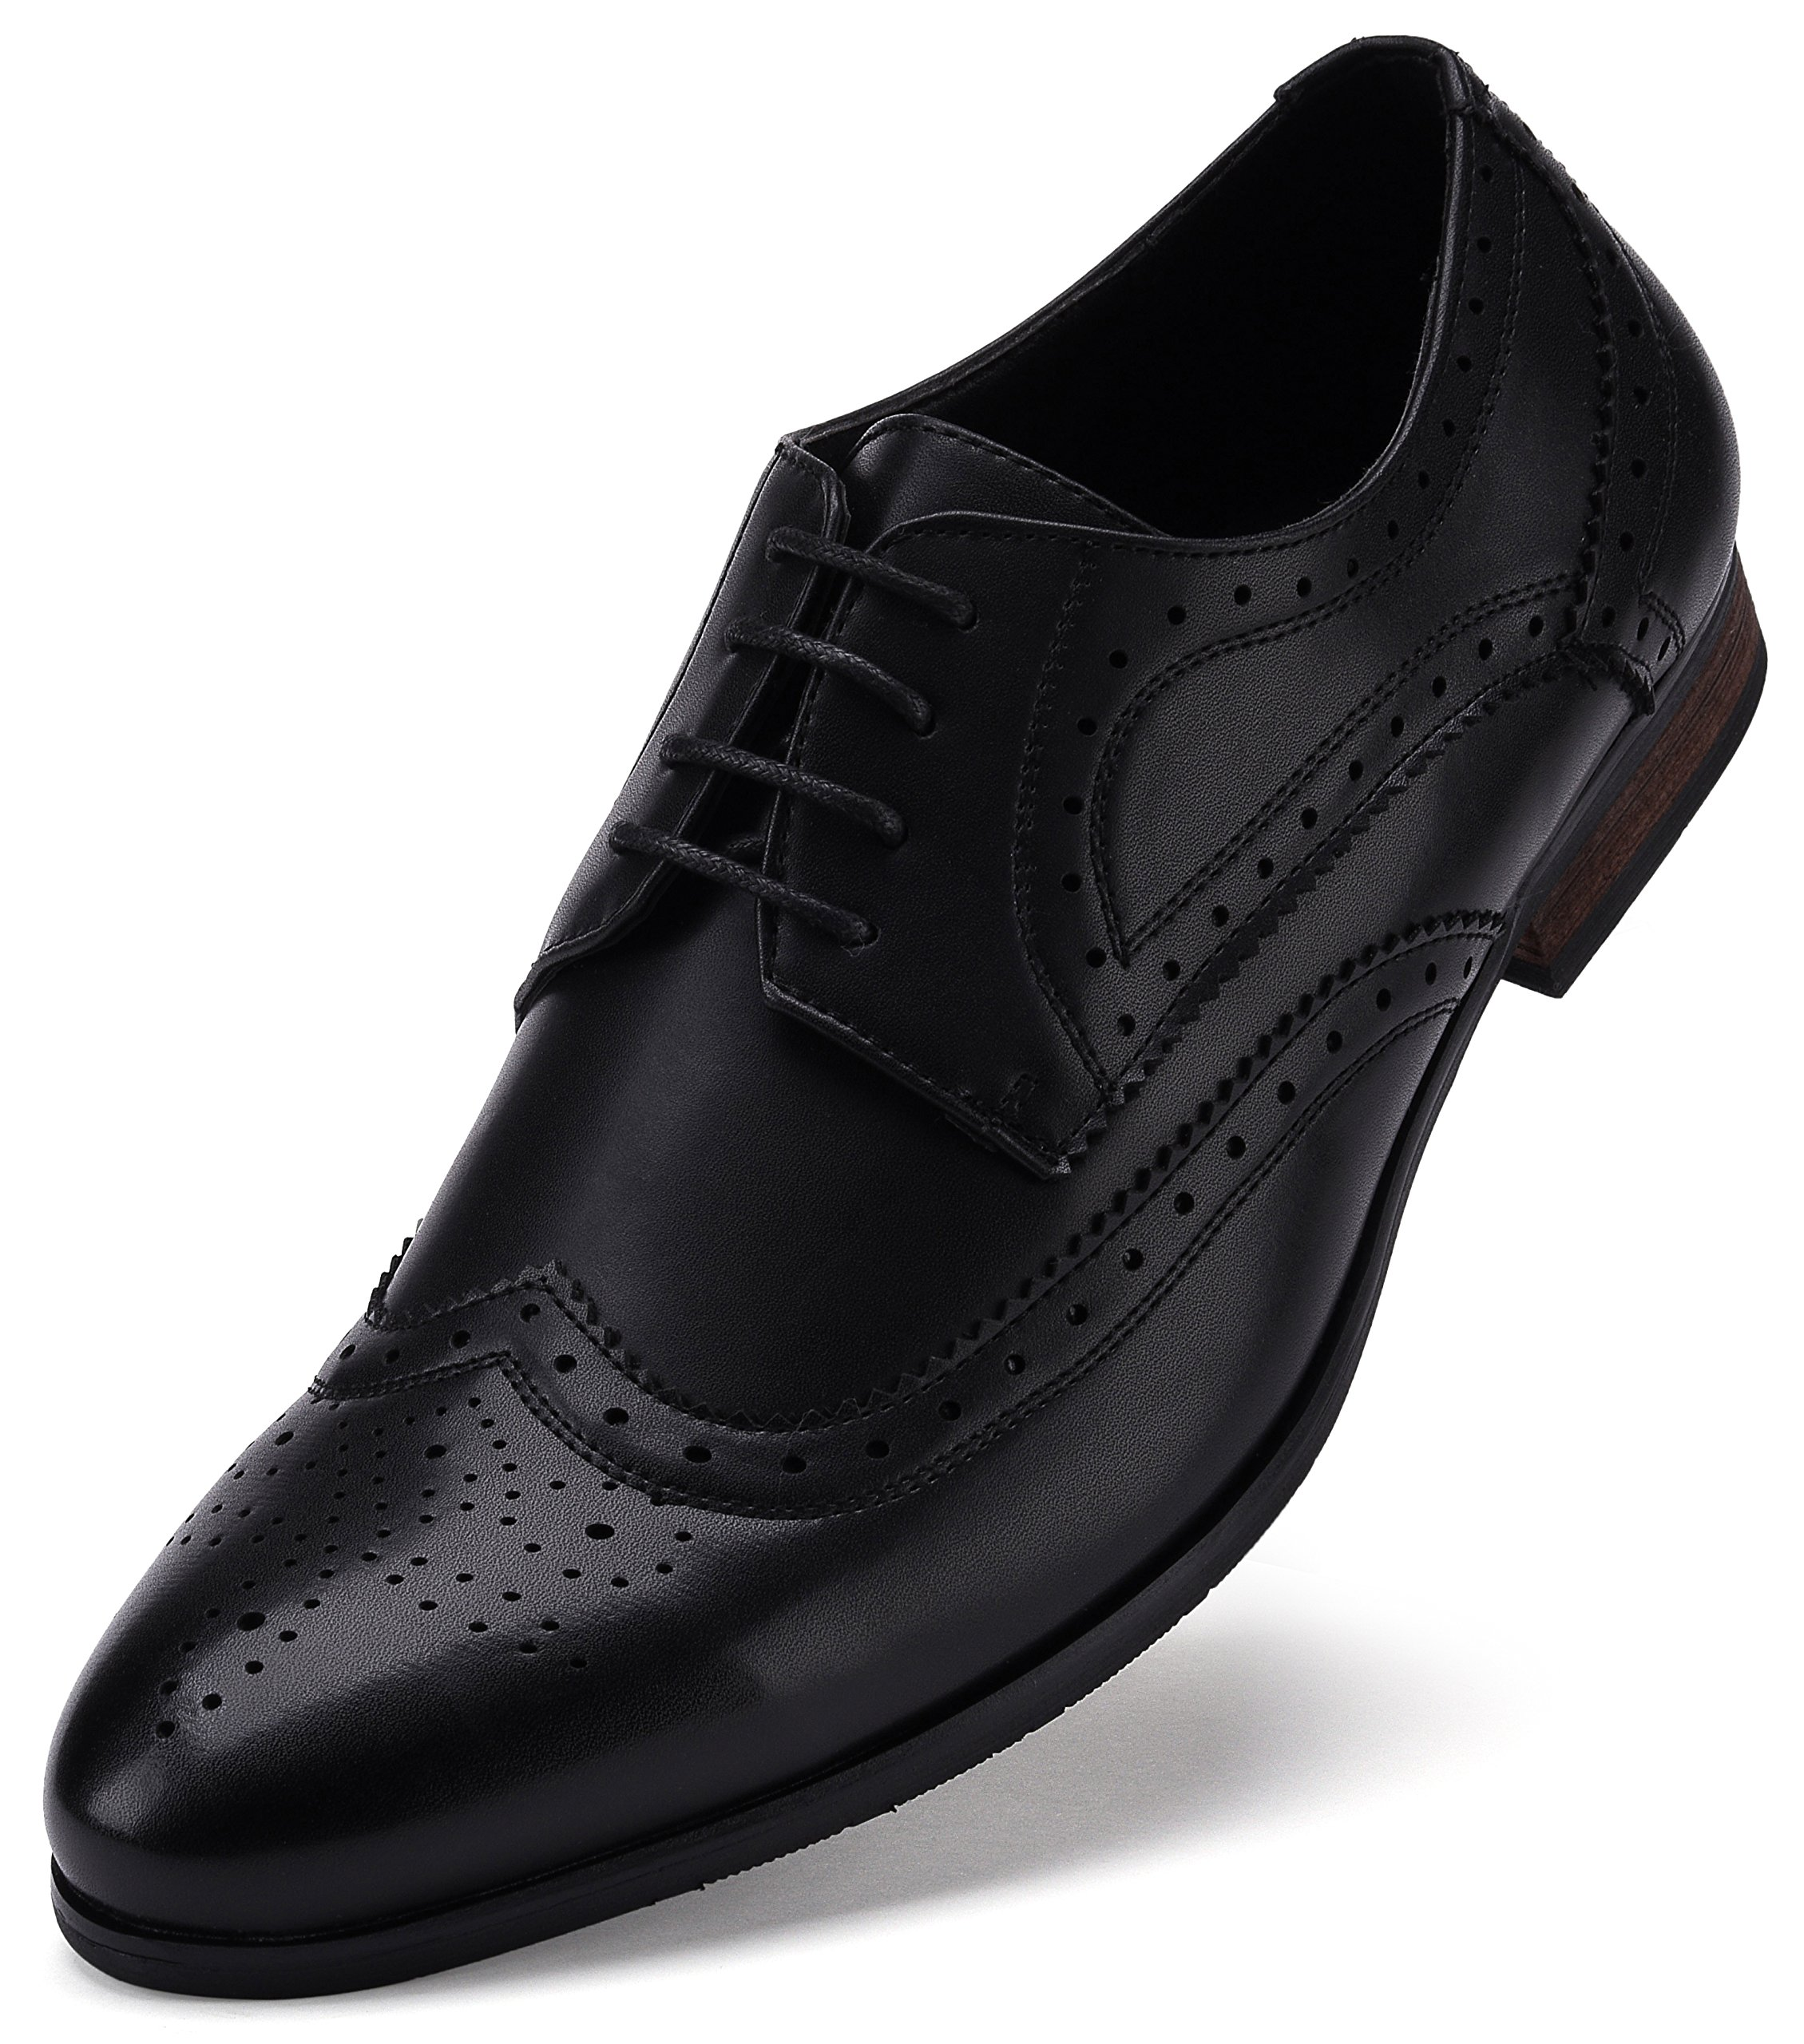 Fine Detail Wingtip Oxford Shoe Black US-10.5D(M) | UK-43-44 | EU-10